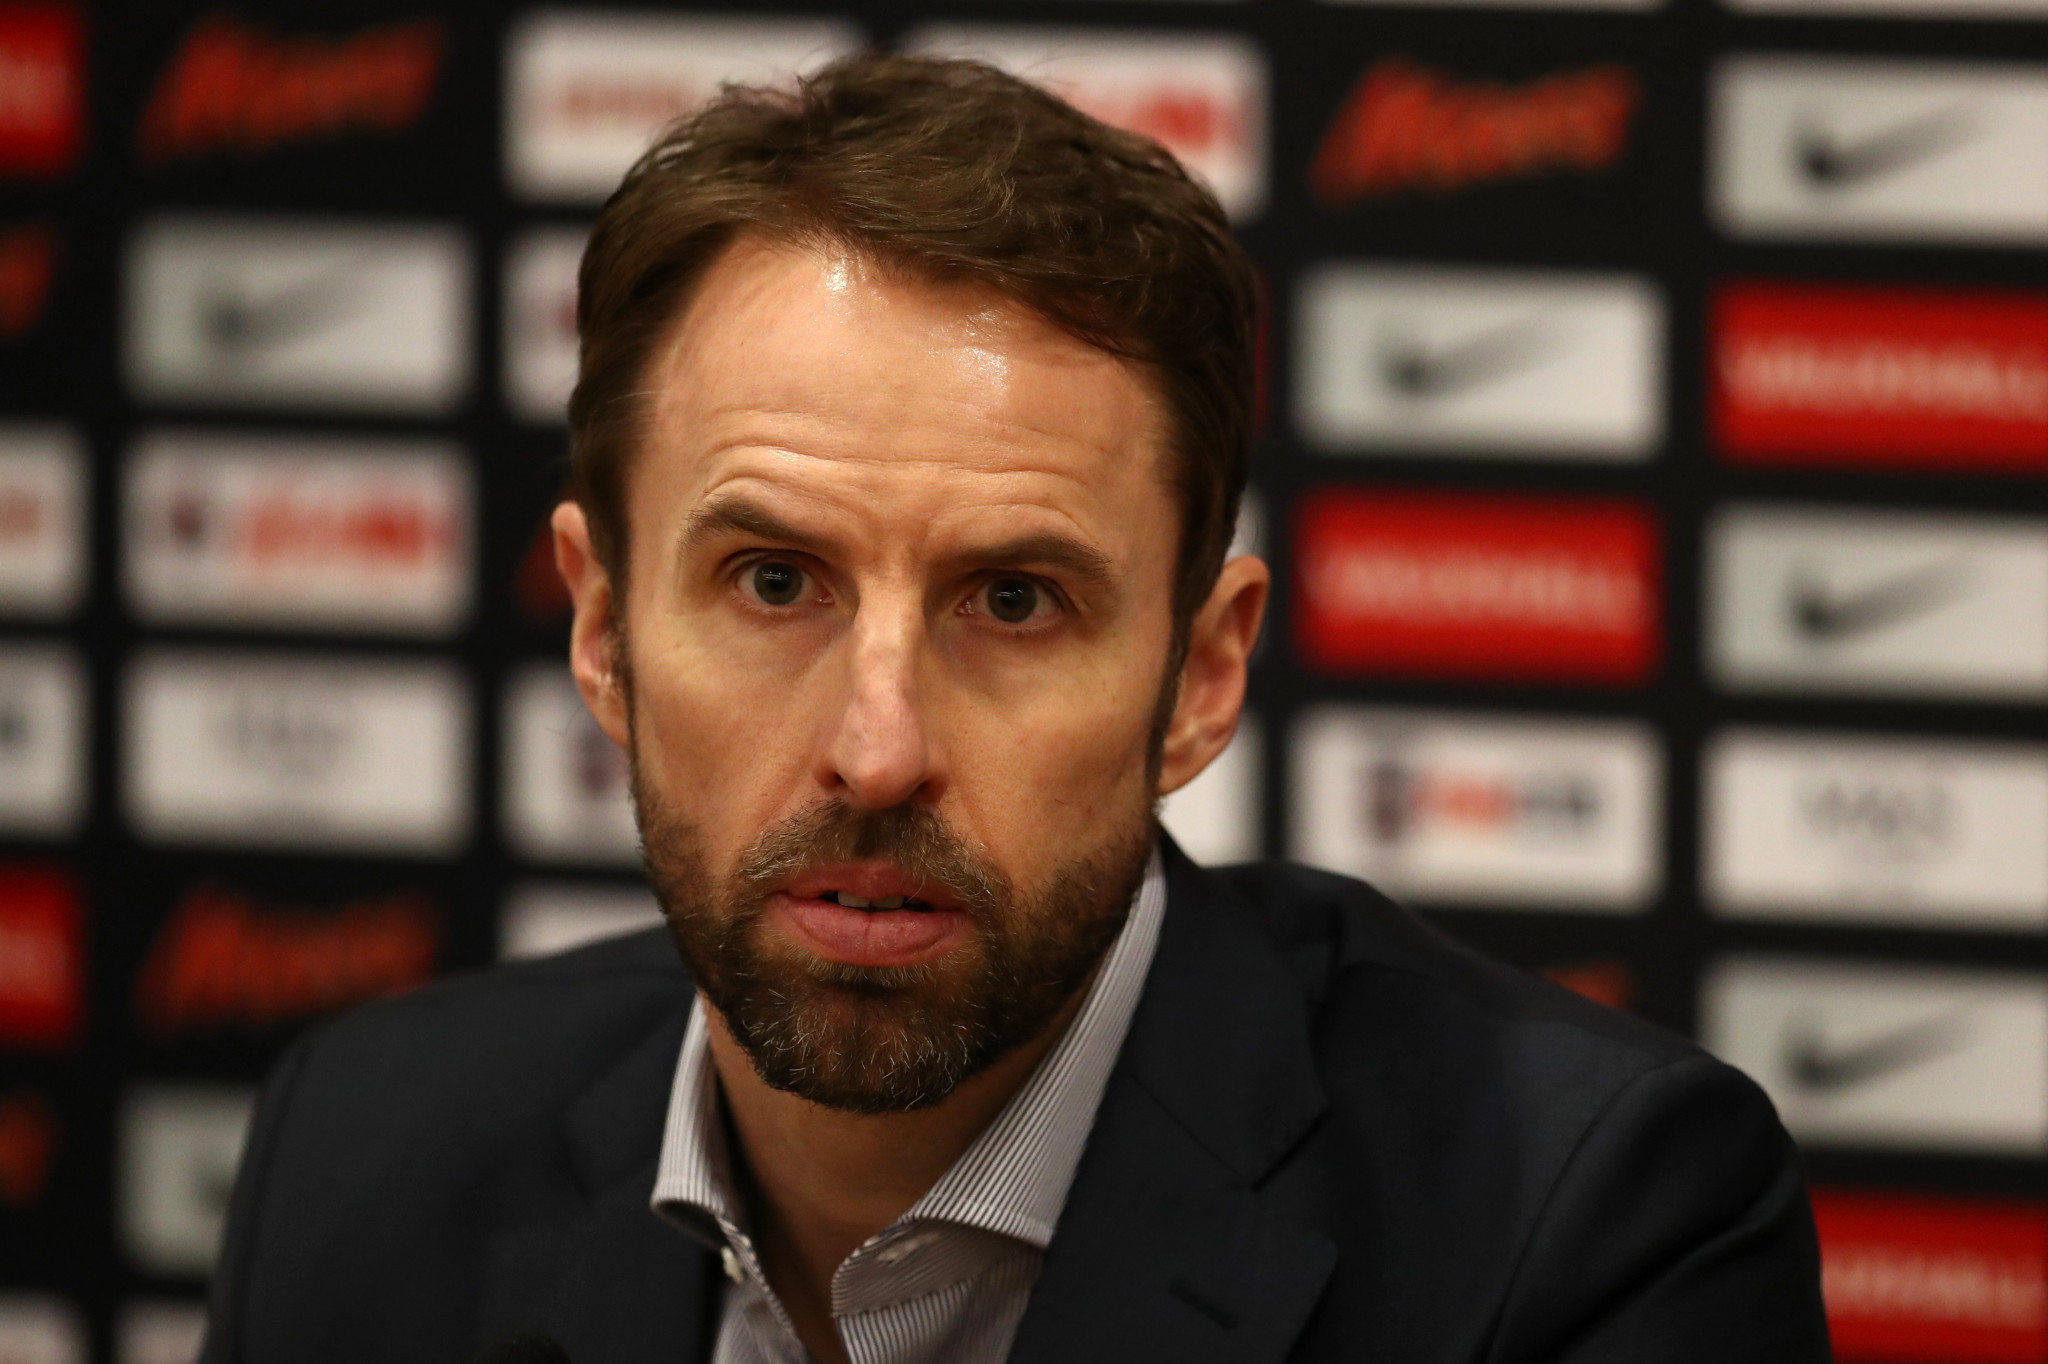 England manager Gareth Southgate claimed last week that the national team were preparing to compete at the World Cup and there were no plans to boycott despite the current political situation between Britain and Russia ©Getty Images